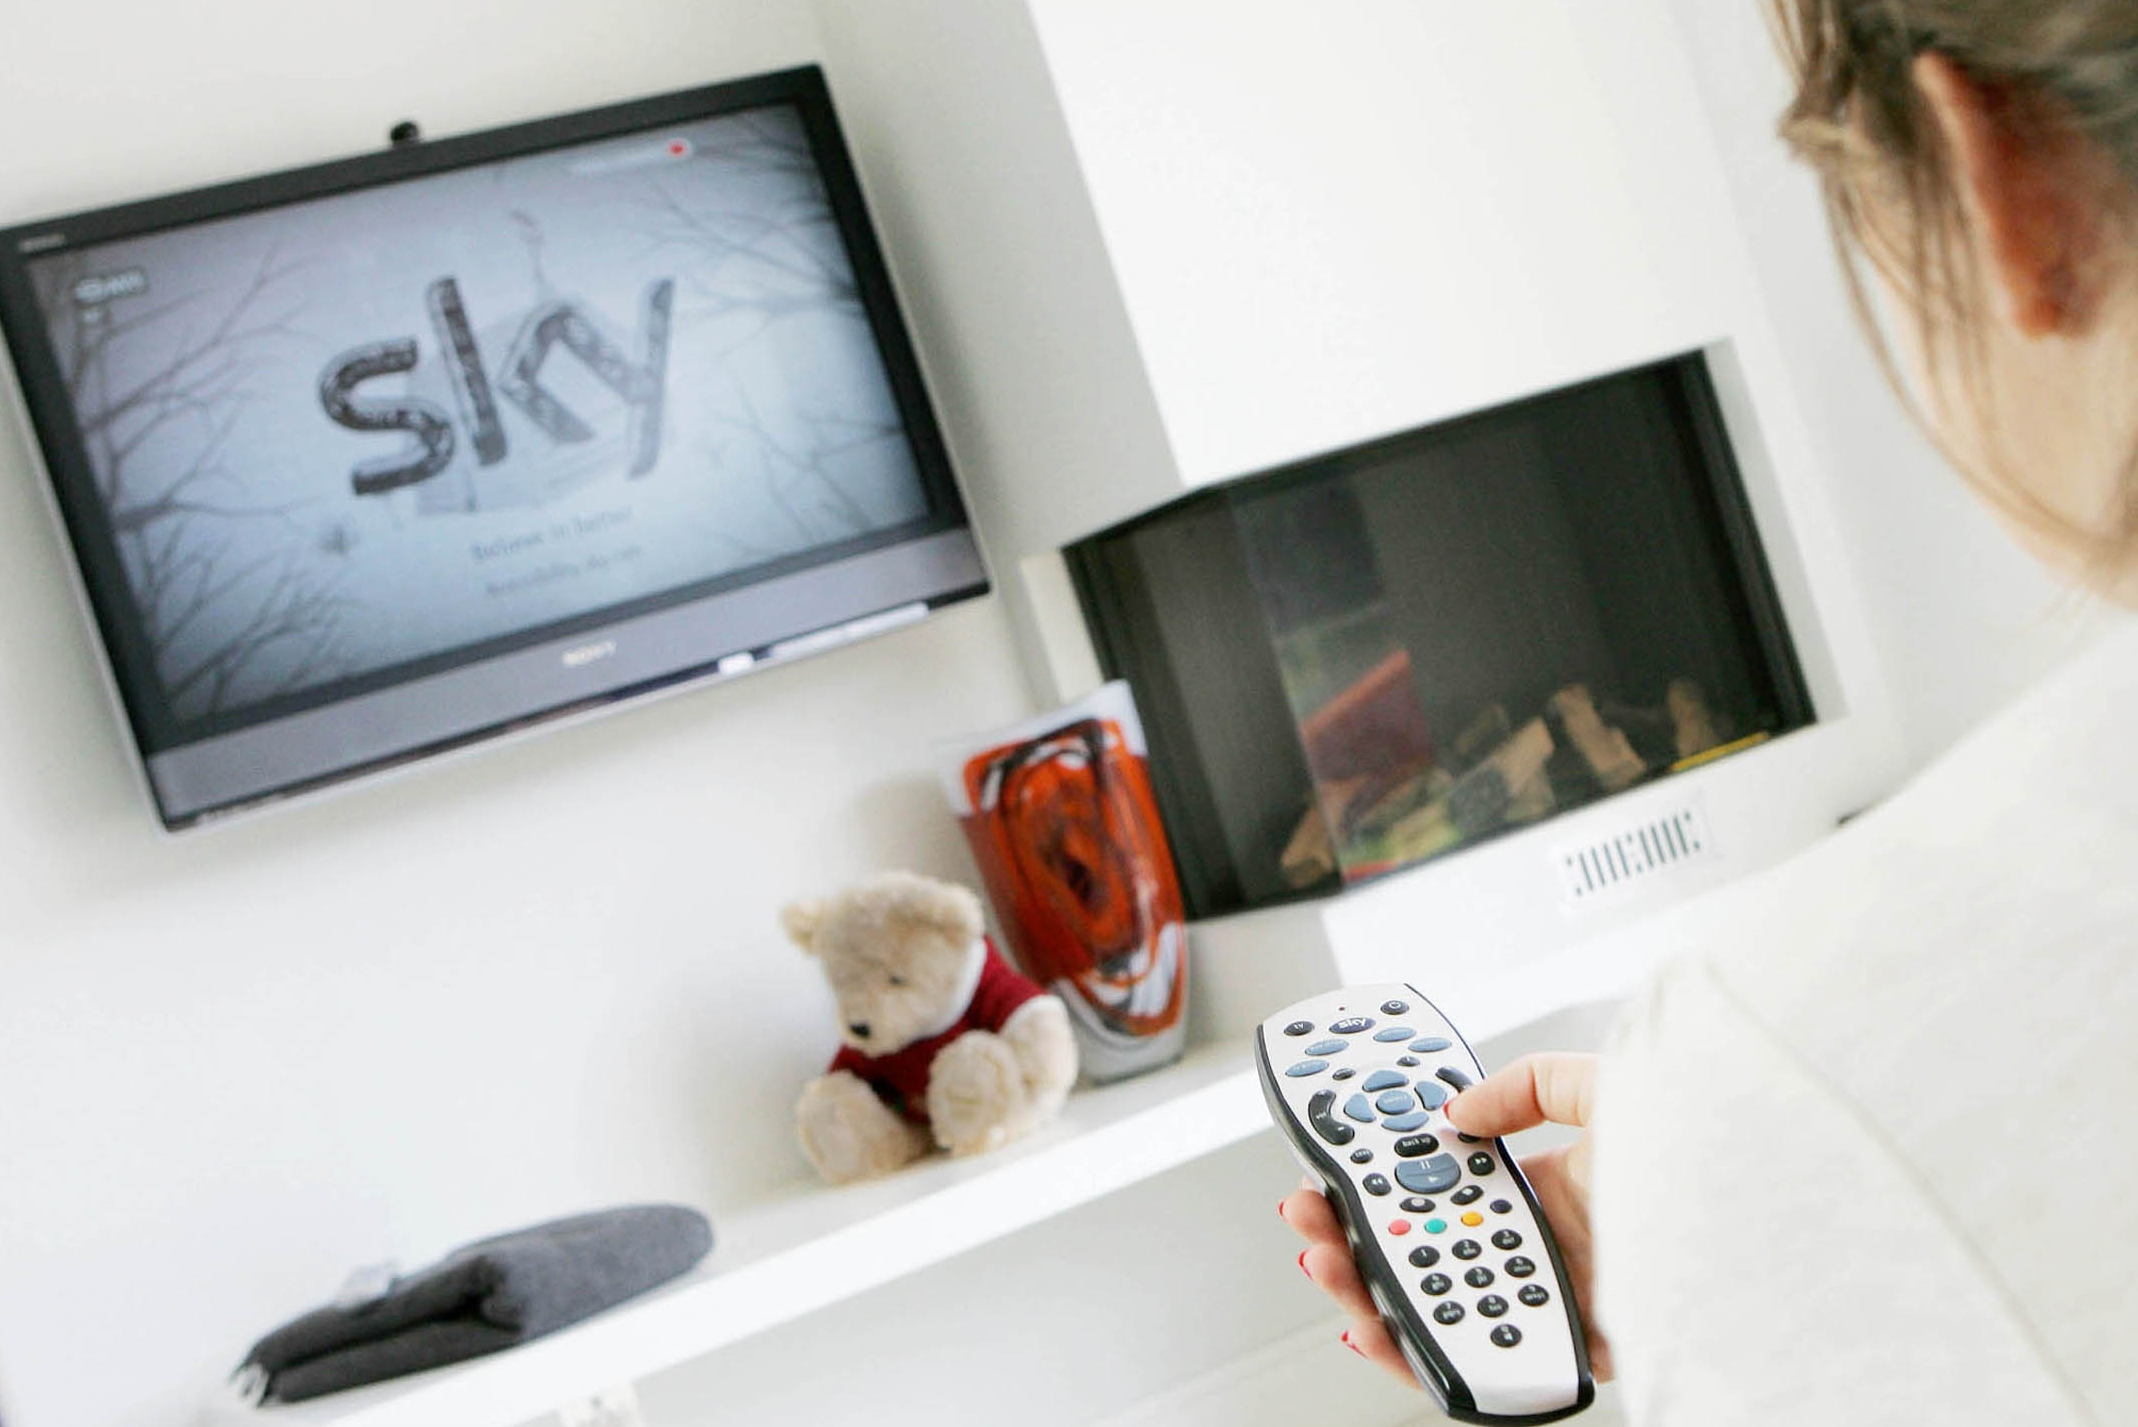 Sky Launches AdSmart Targeted TV Ads